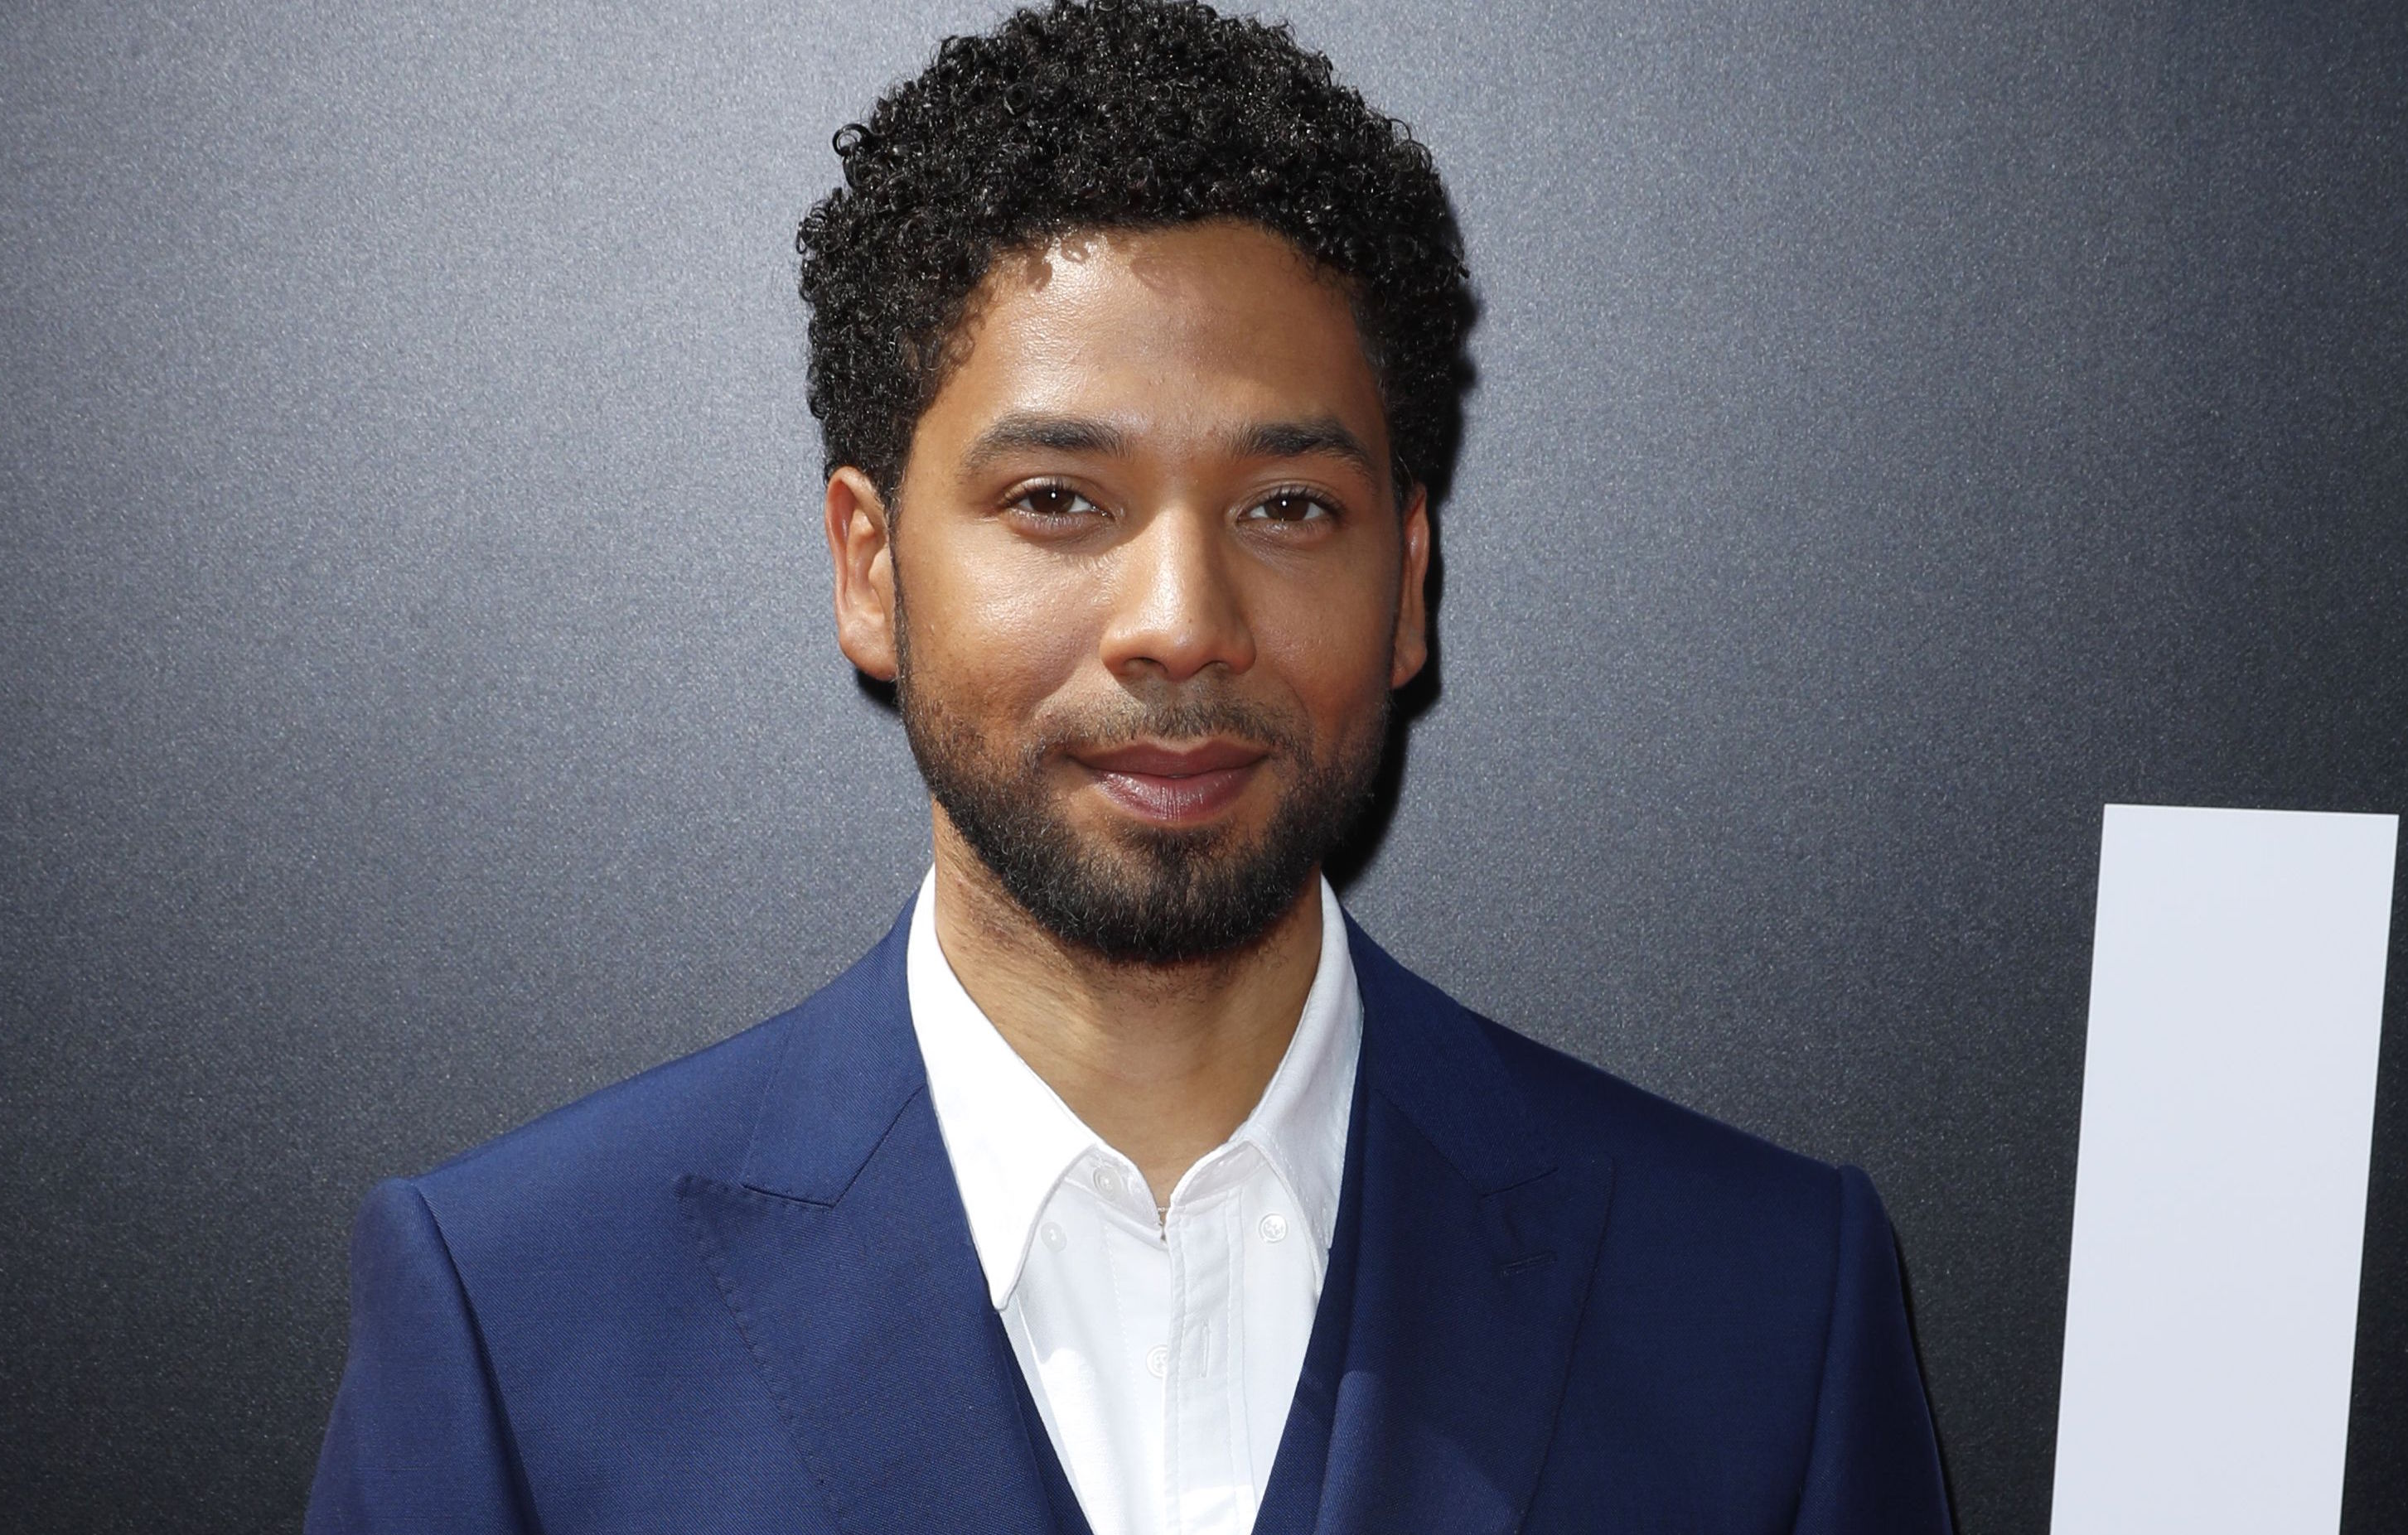 Jussie Smollett Ethnicity, Race, and Nationality